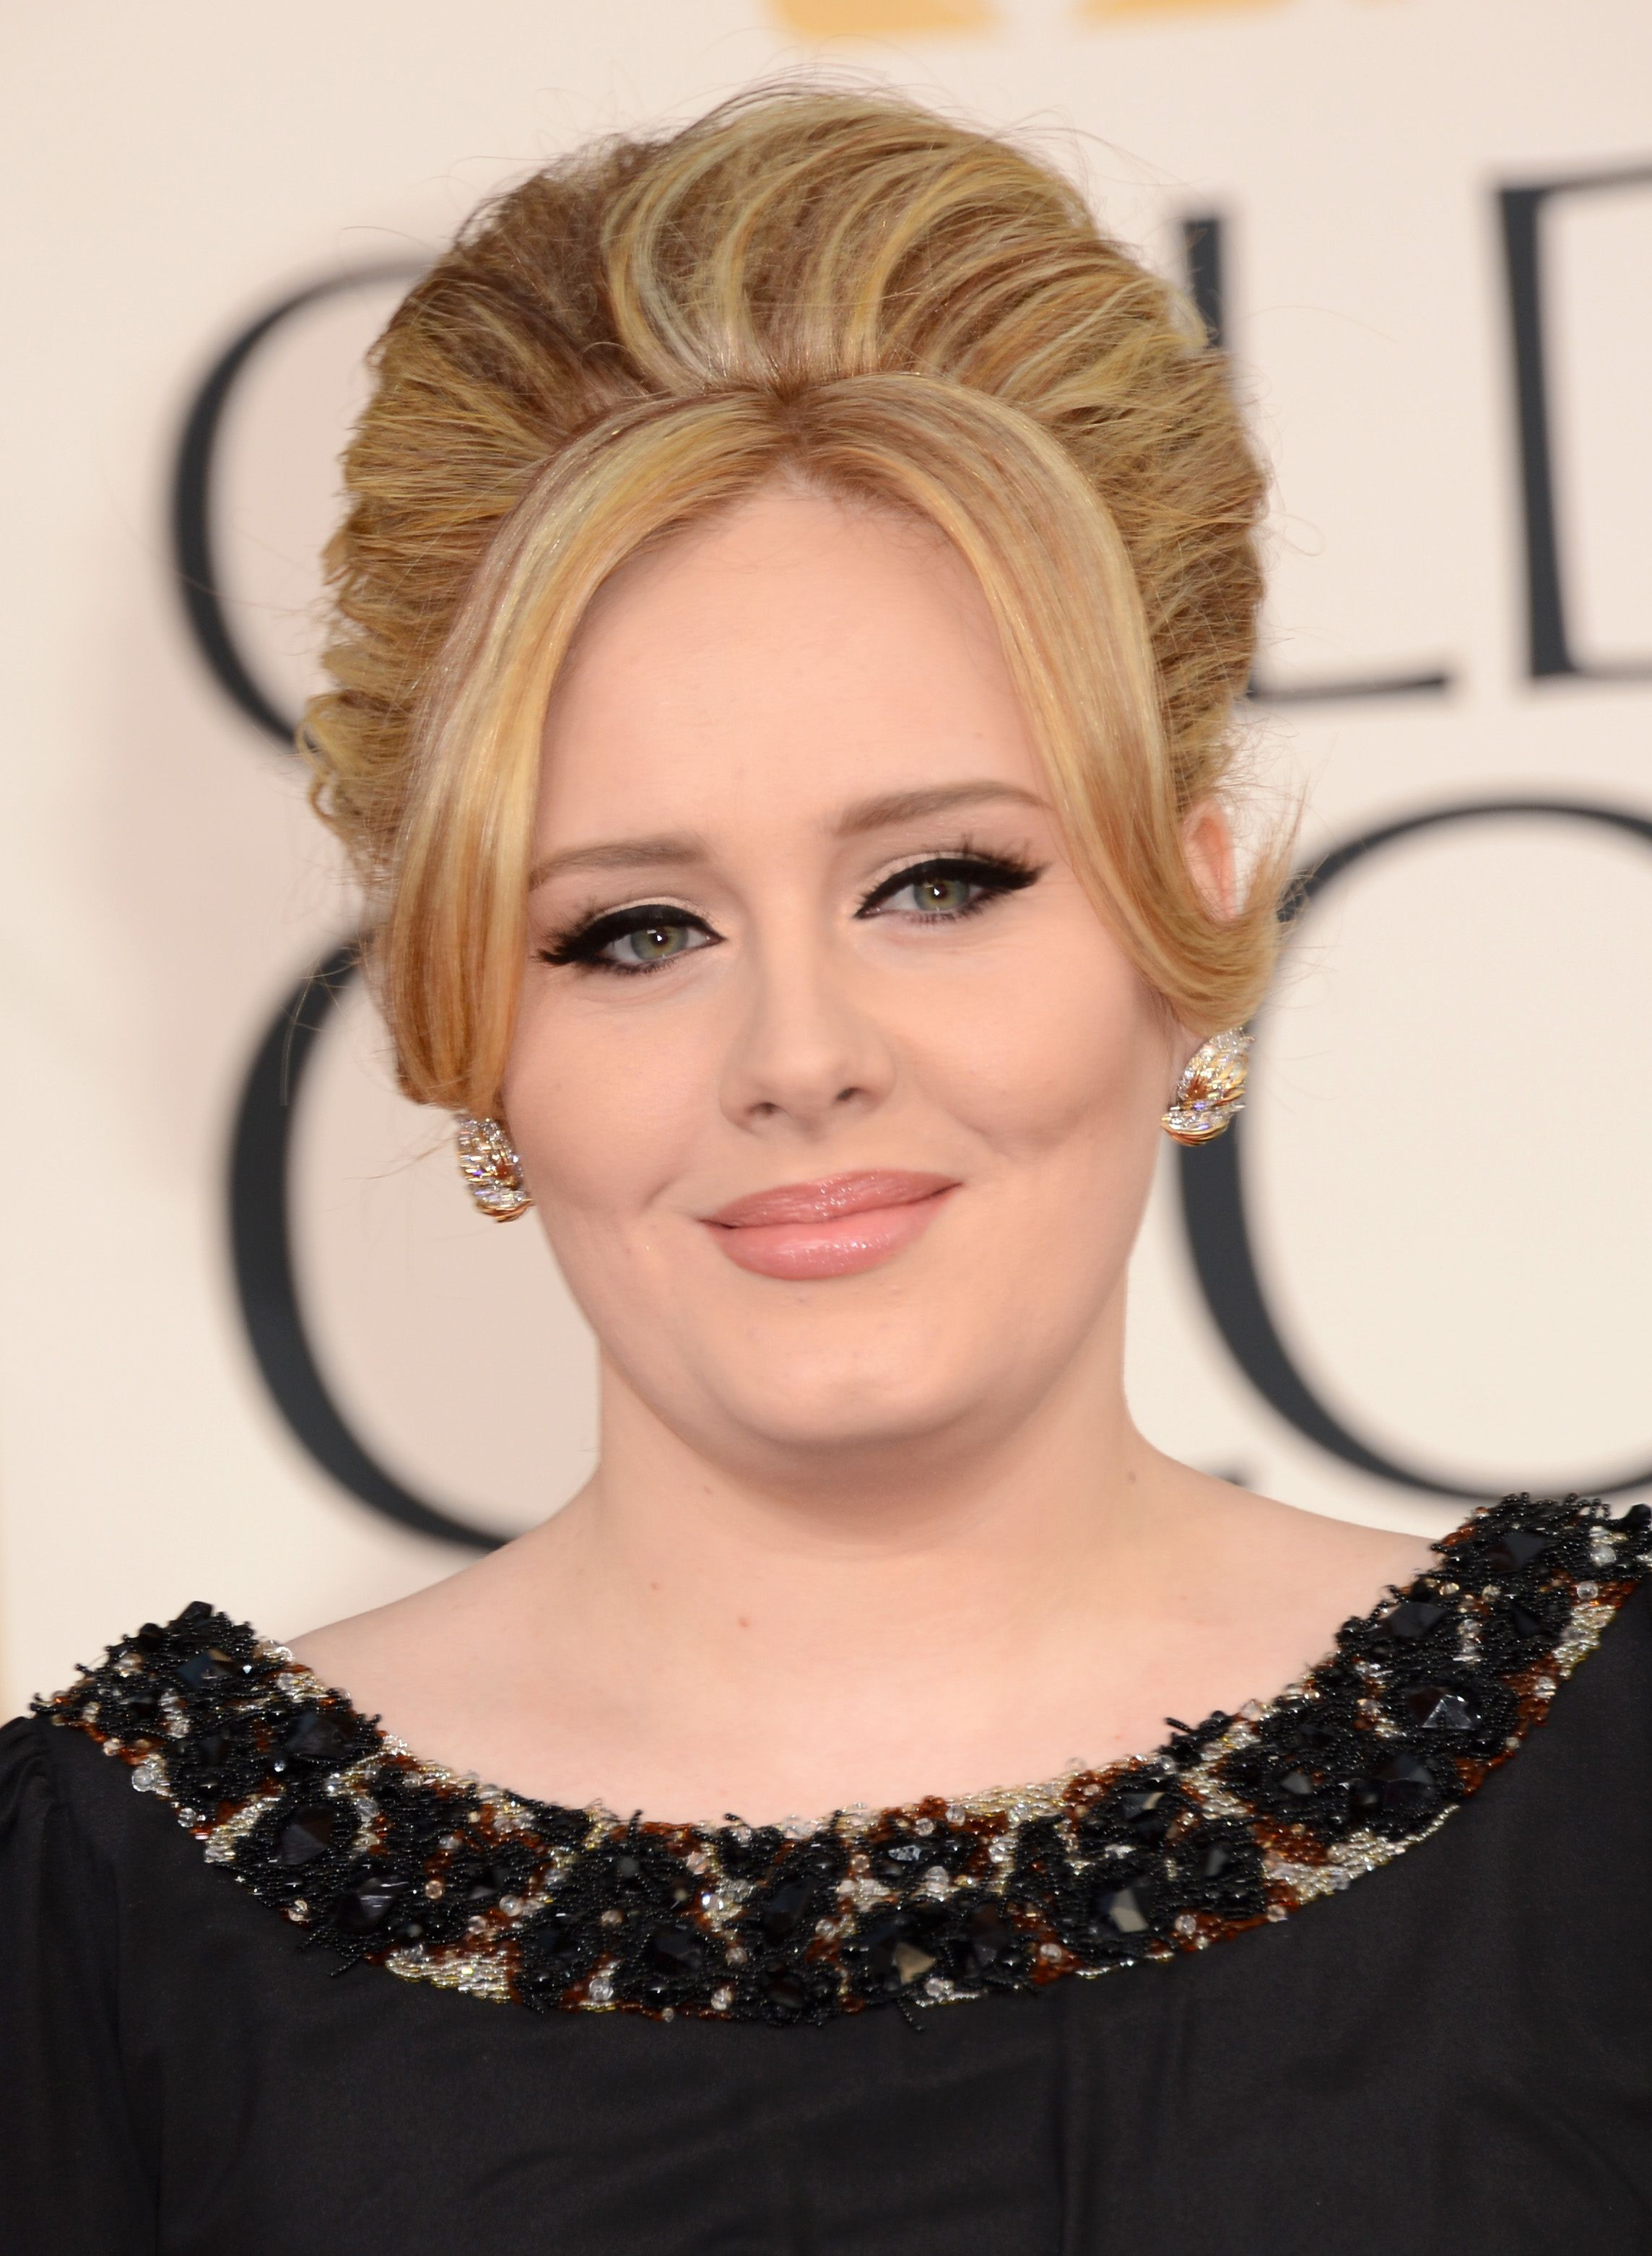 top 60 flattering hairstyles for round faces | adele | adele